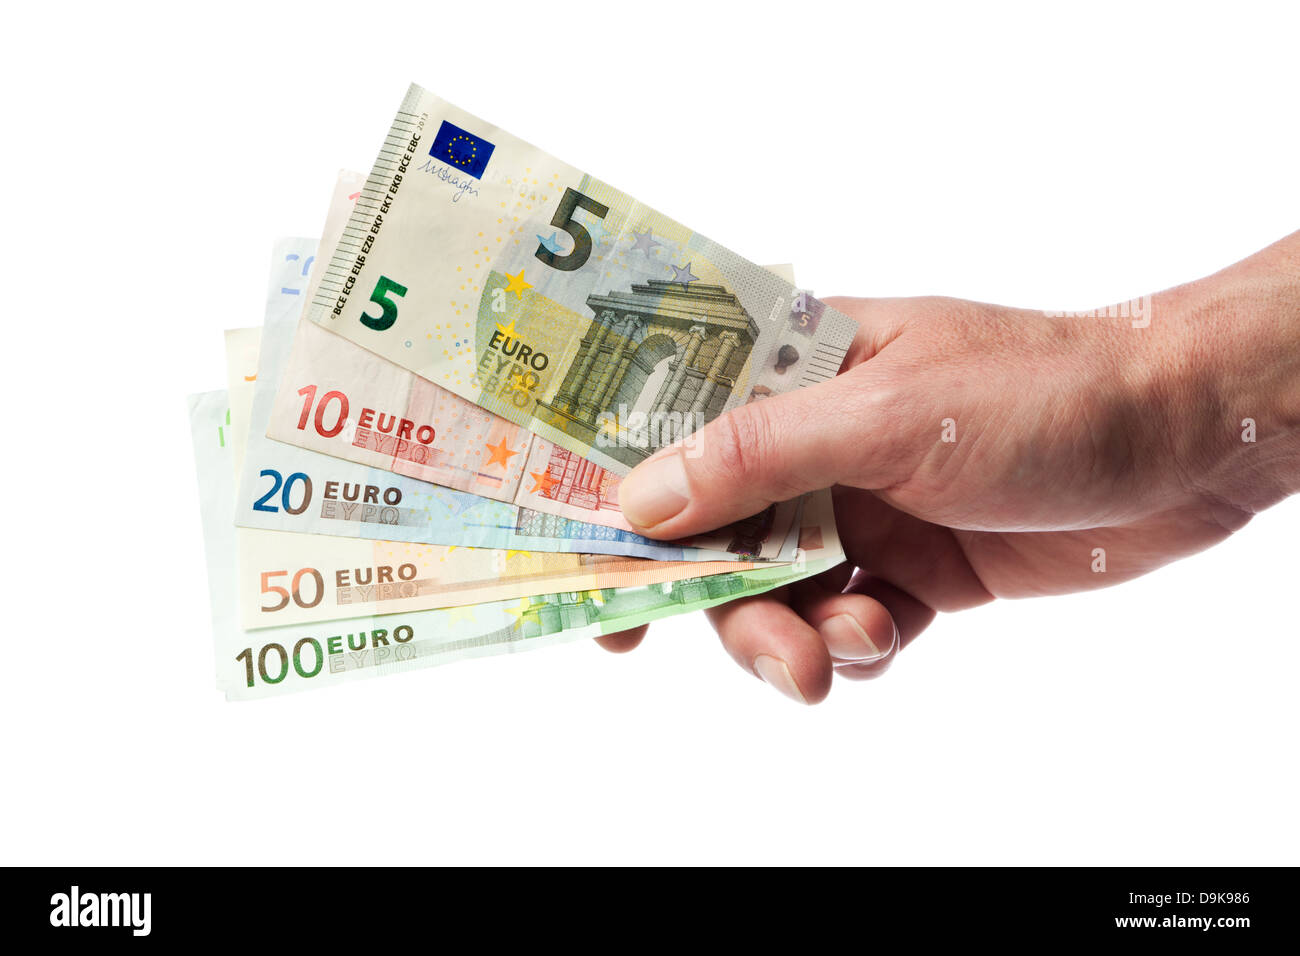 Male hand holding european currency bills from five to hundred euros fanned out, isolated on white background - Stock Image